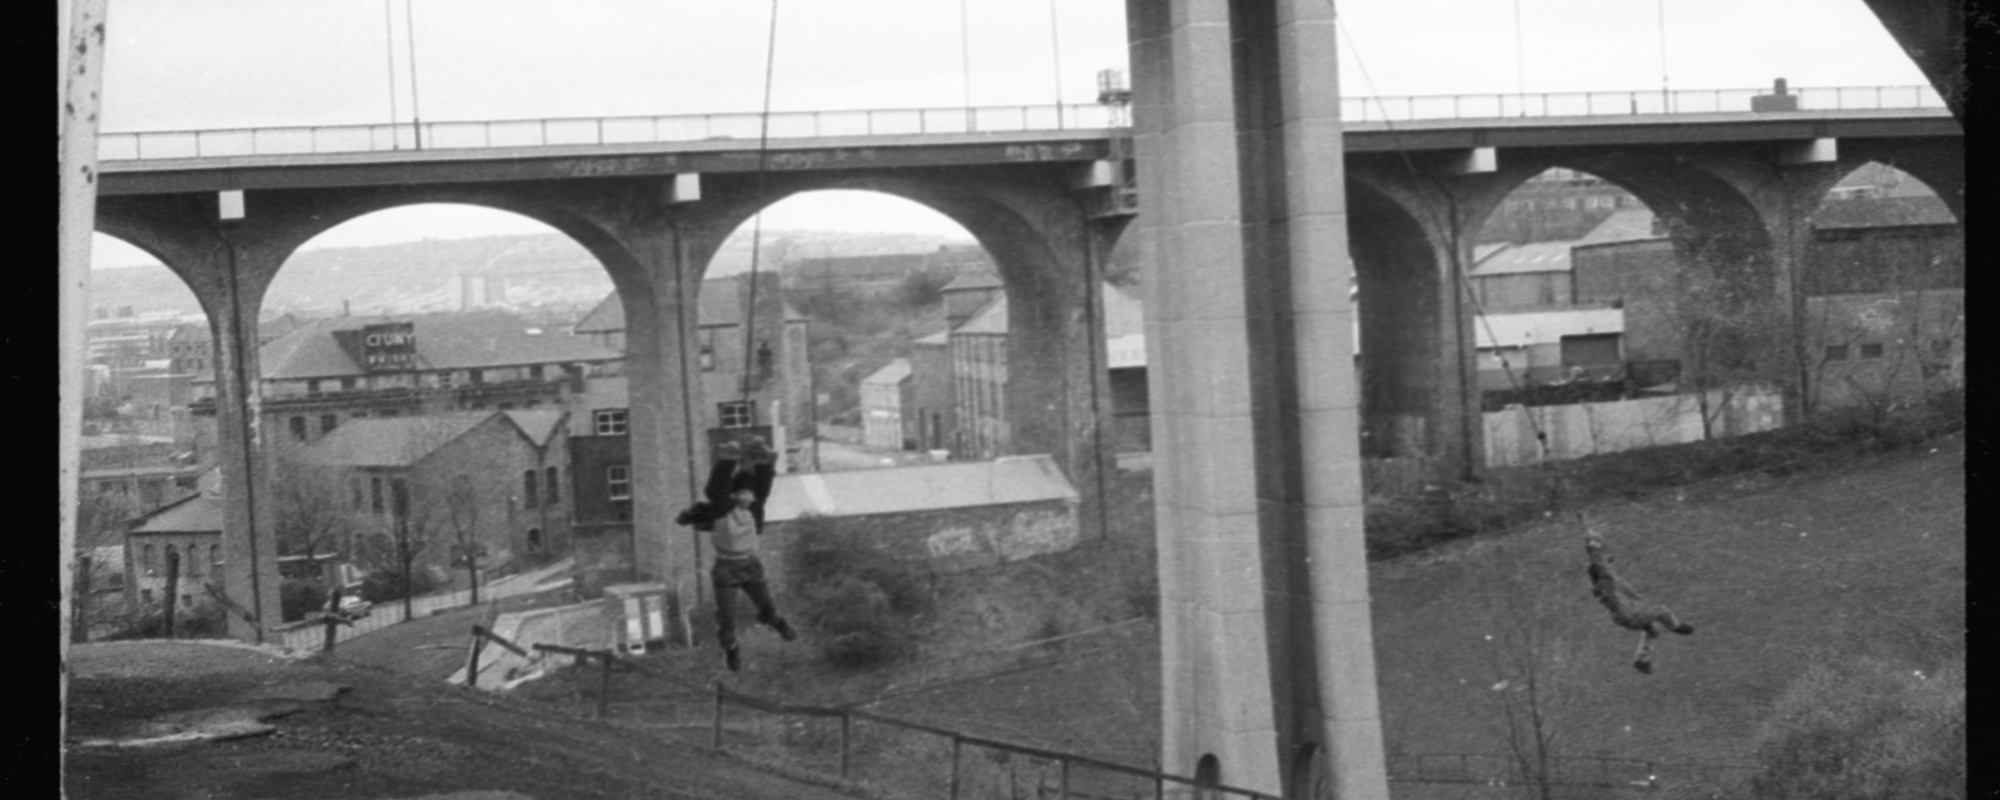 boys swinging from Ouseburn viaduct